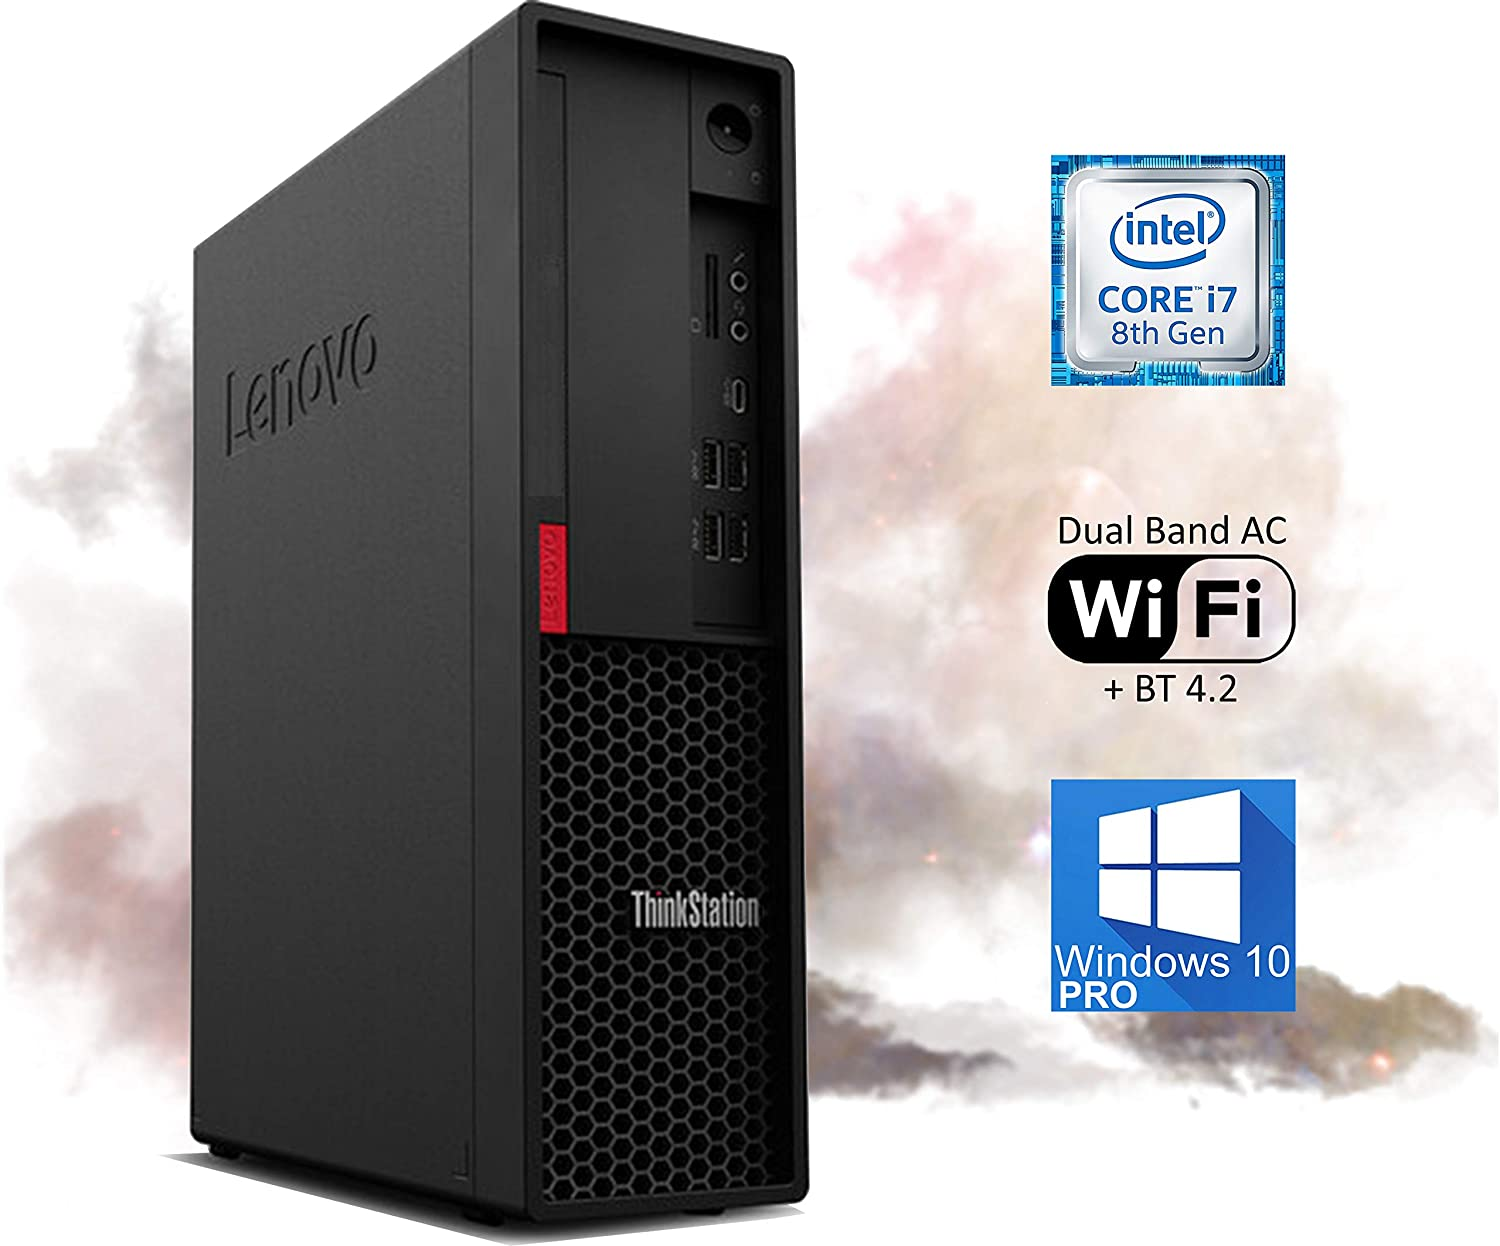 Lenovo ThinkStation P330 Desktop PC, Intel i7-8700 Upto 4.6 GHz, 16GB RAM 1TB NVMe SSD, 4K UHD Graphics 630, DisplayPort, HDMI, AC Wi-Fi, Bluetooth, USB Type-C – Windows 10 Pro (RENEWED)